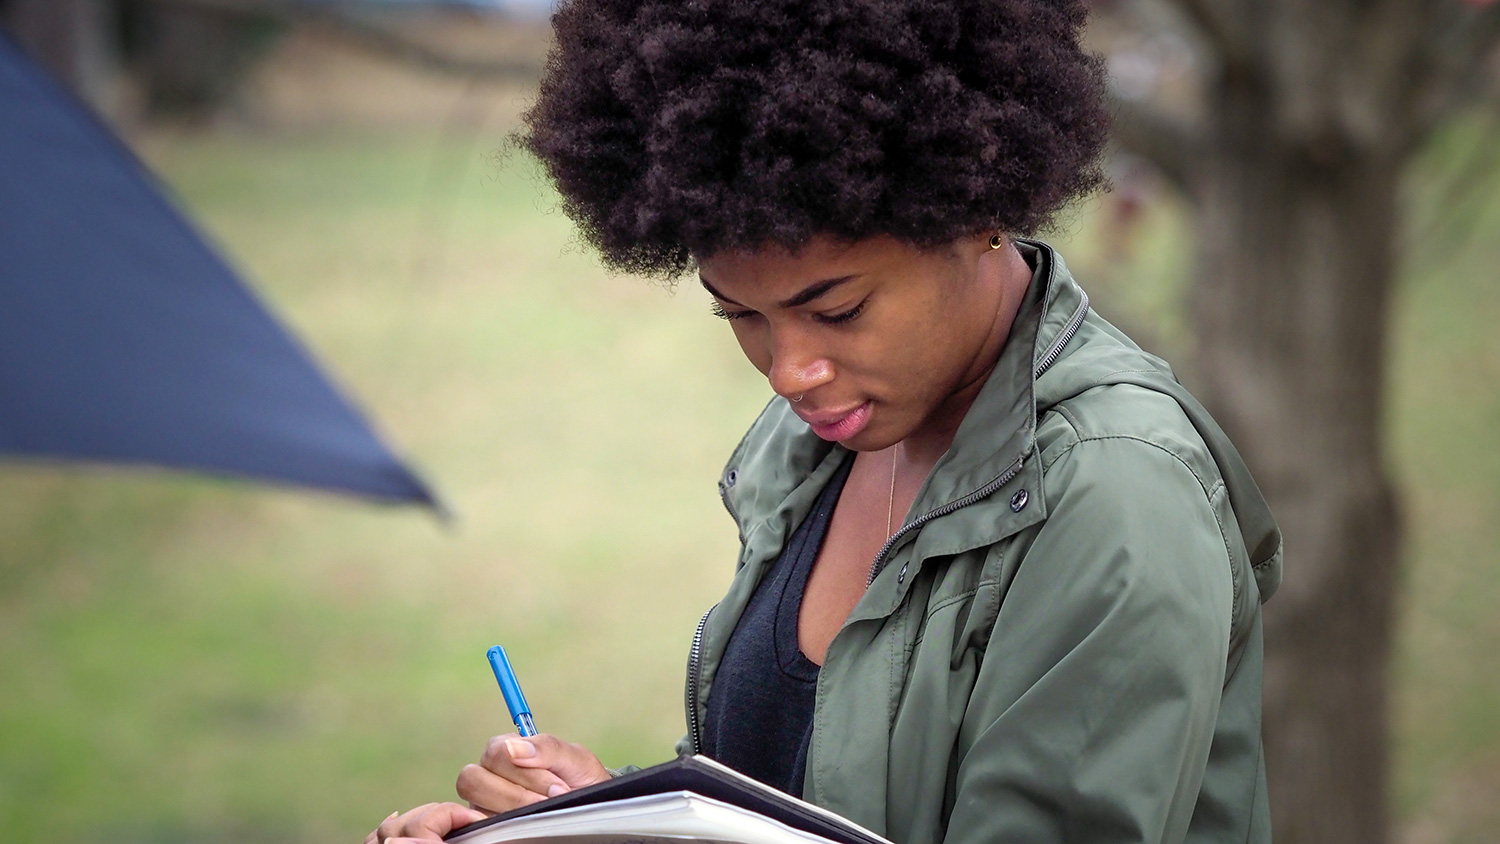 Student taking notes during an outdoor class